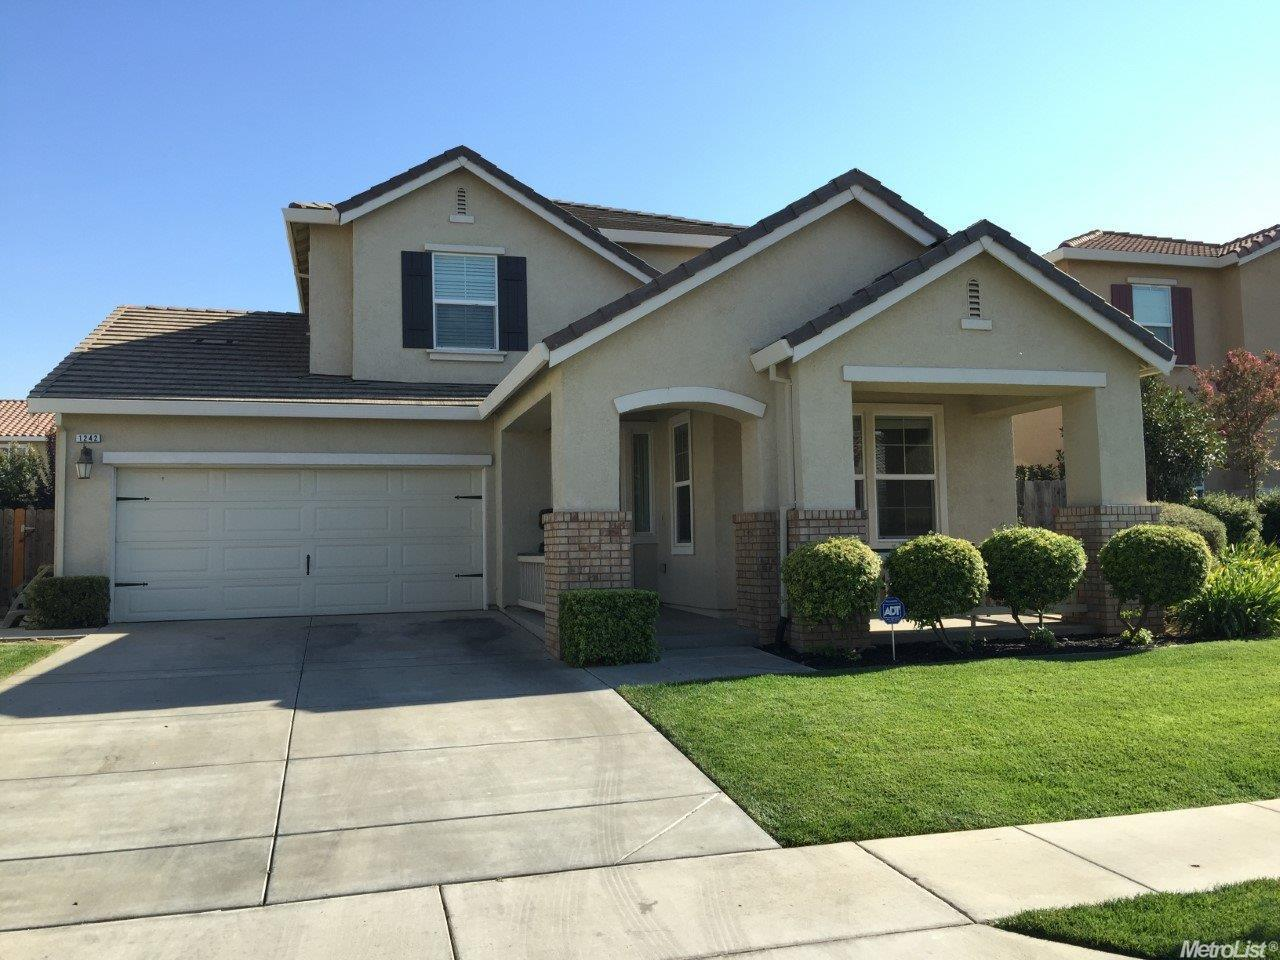 1242 Jewel Flower Dr, Patterson, CA 95363